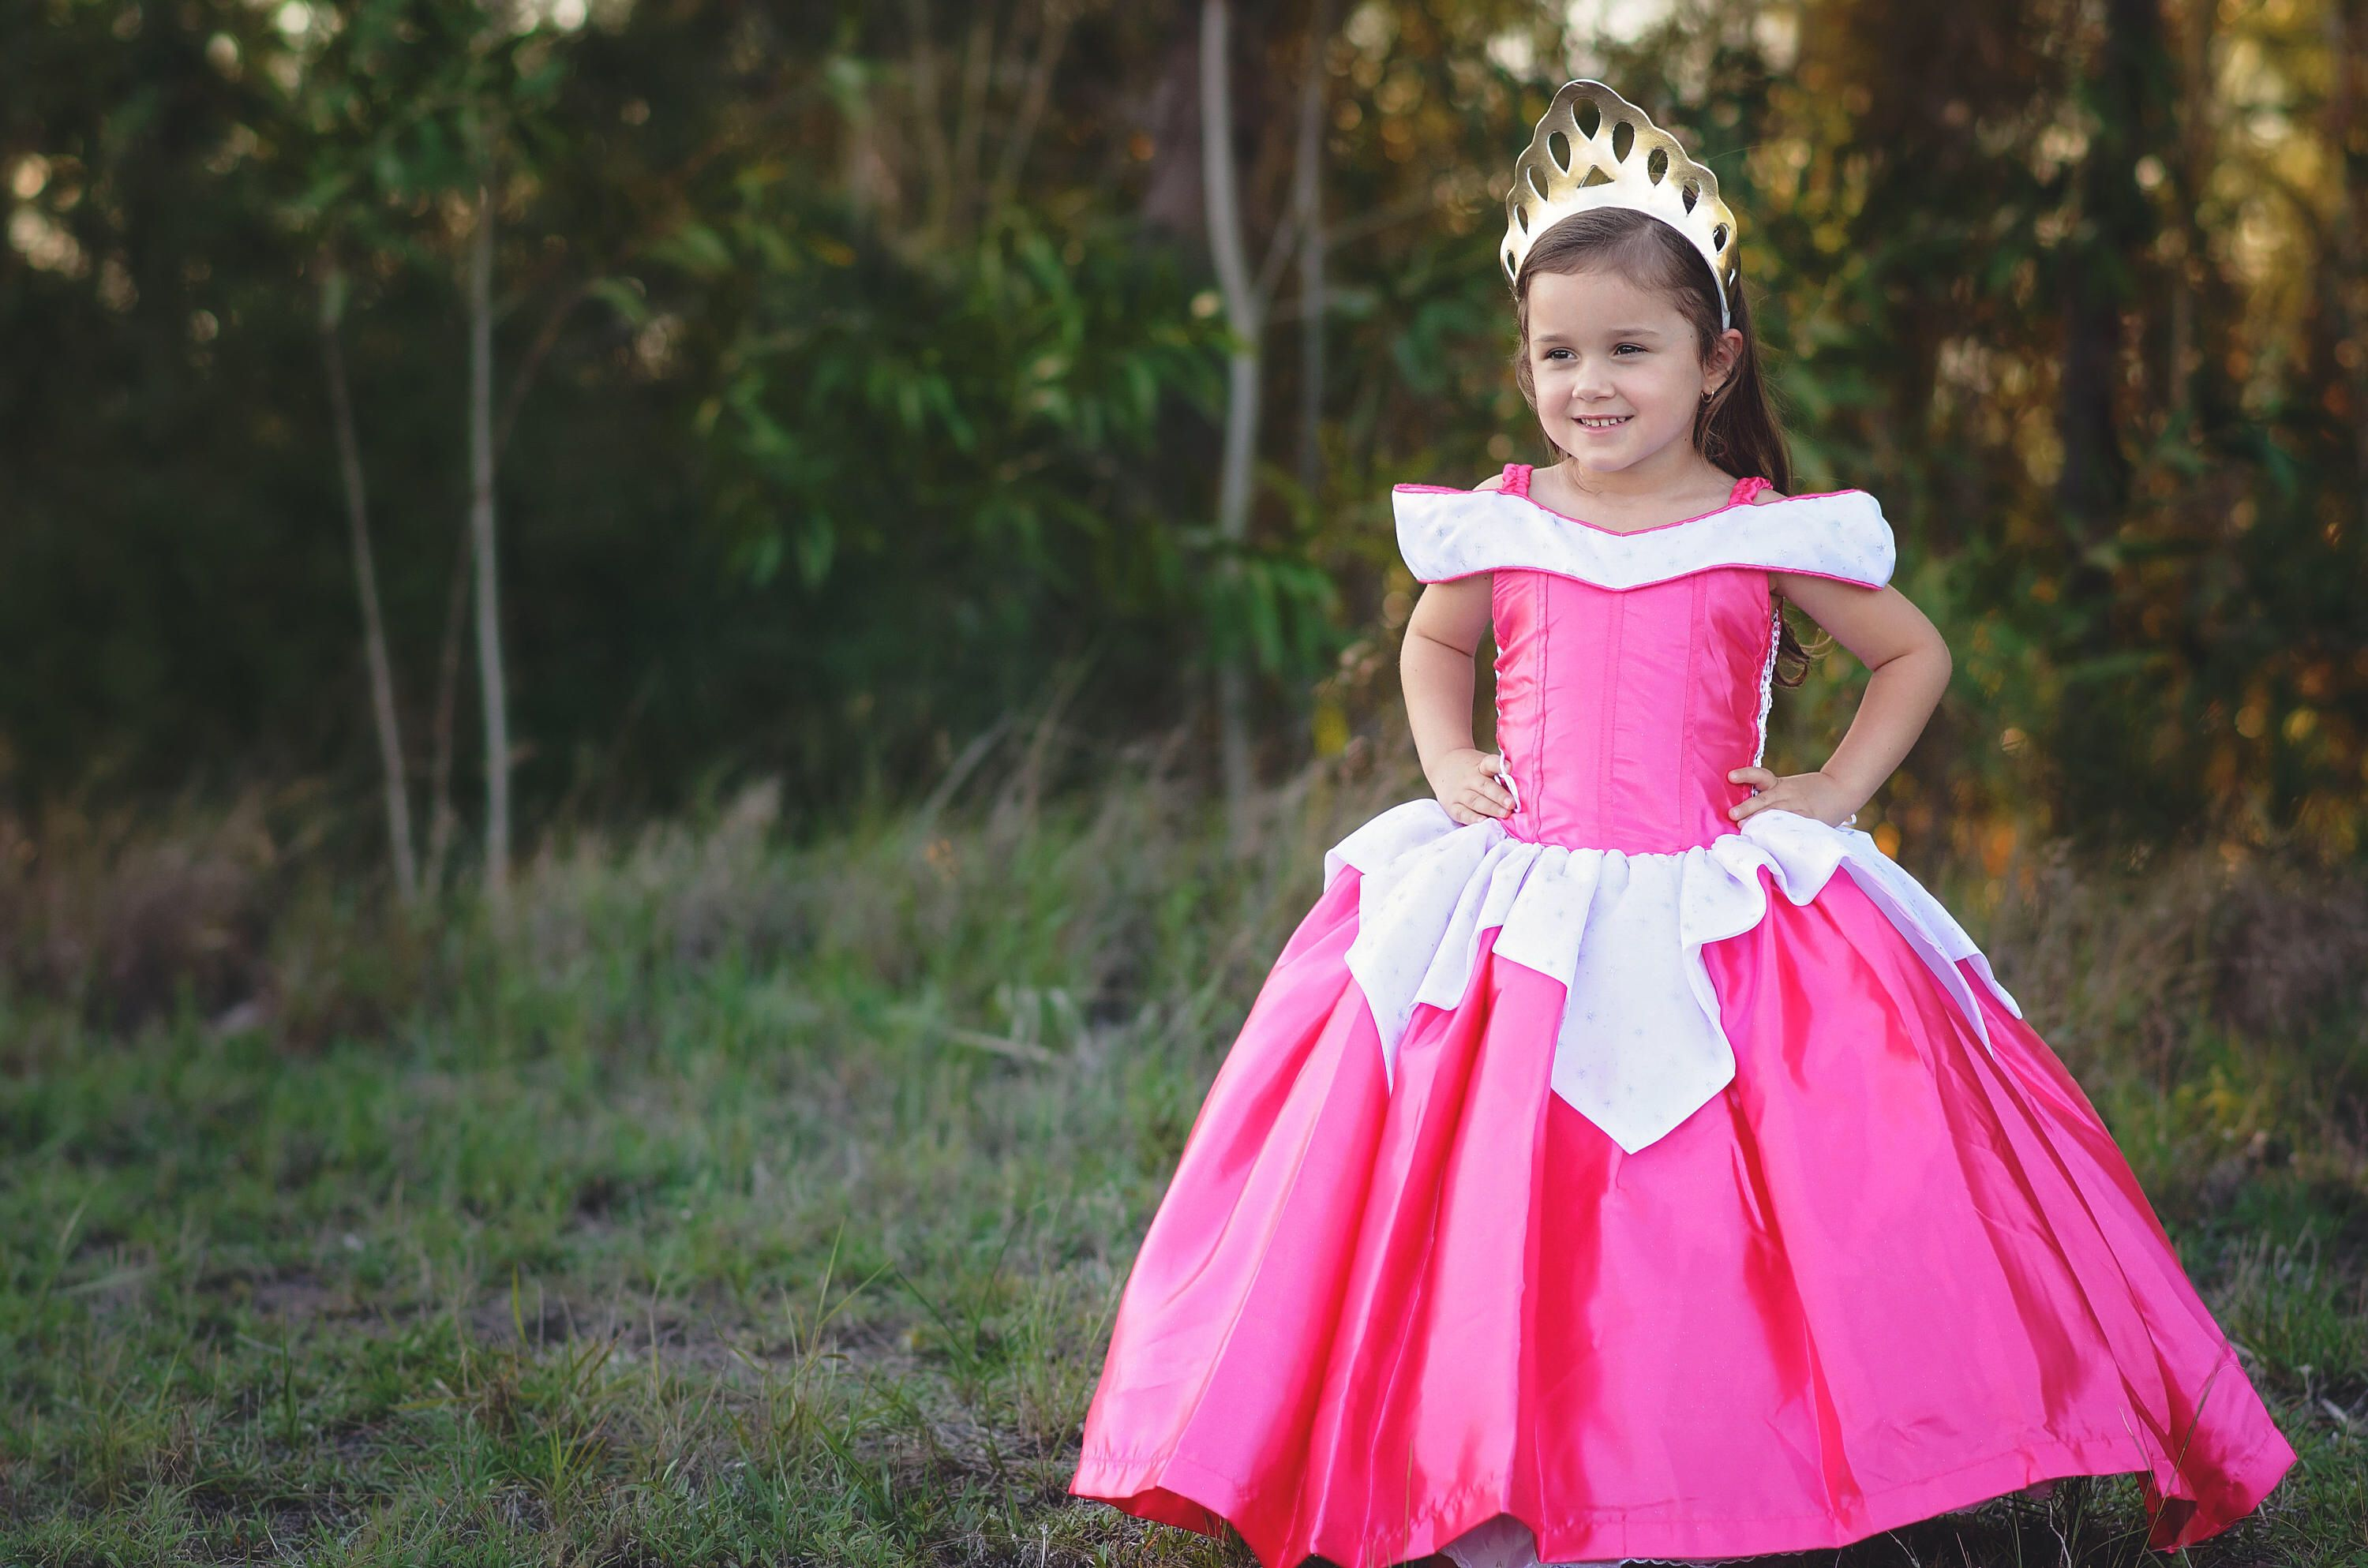 Princess Aurora Dress / Disney Sleeping Beauty Inspired Costume / Ball gown style for toddler child girl baby by MagicalWishBoutique on Etsy ...  sc 1 st  Pinterest : toddler aurora costume  - Germanpascual.Com